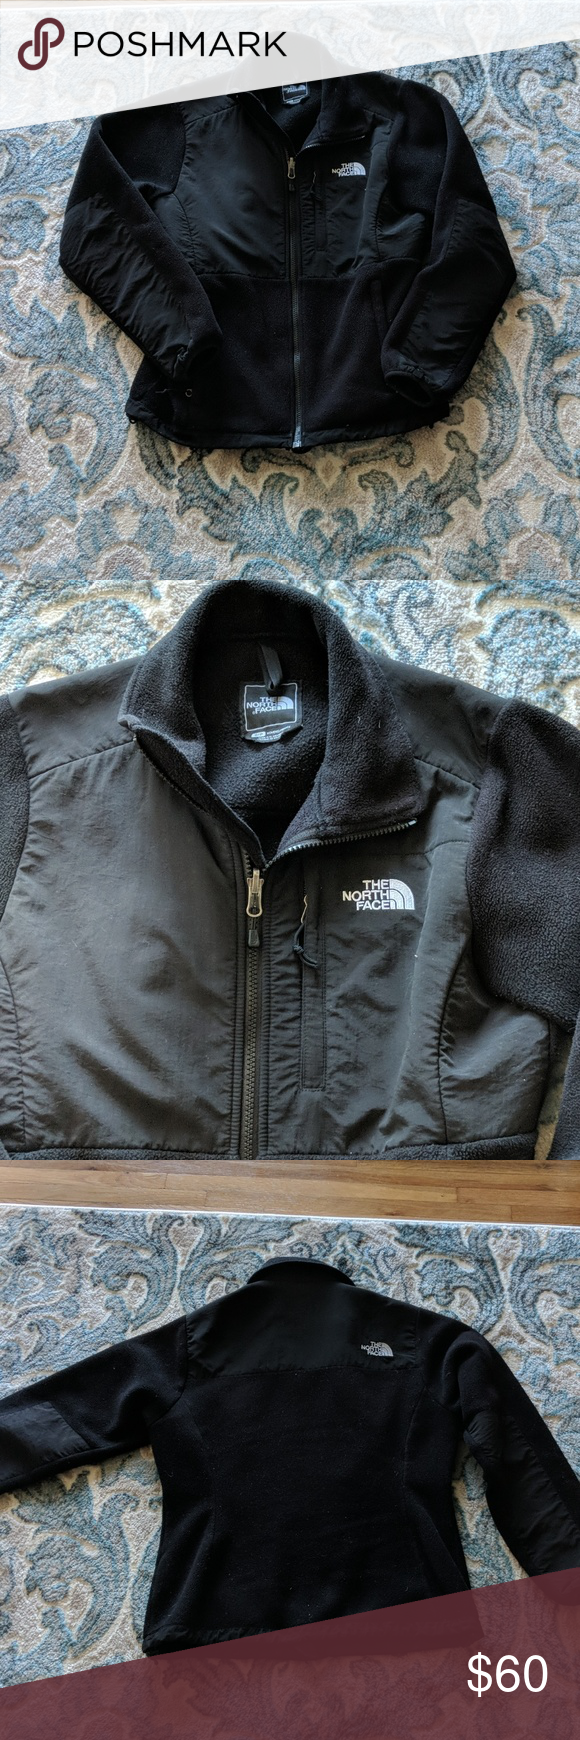 The North Face Denali Jacket Used No Tears Or Stains Pet